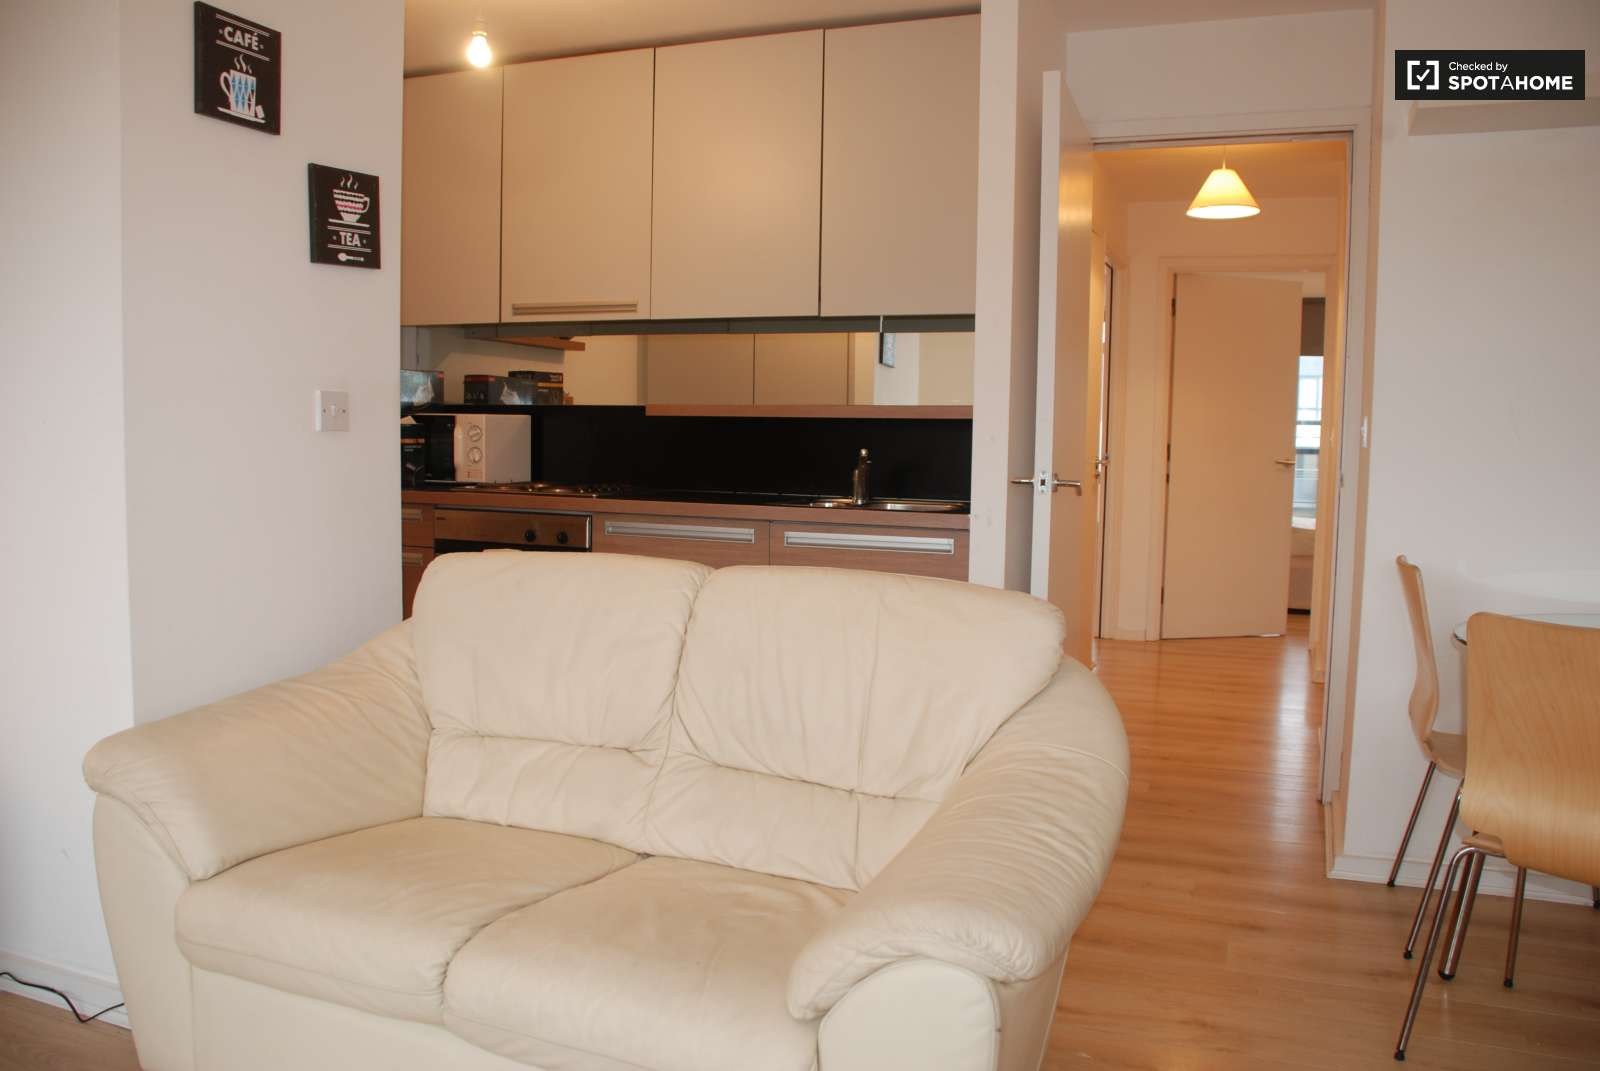 Kitchen   Livingroom. Large 2 Bed Flat for Rent with Balcony in Ashtown  Dublin  ref